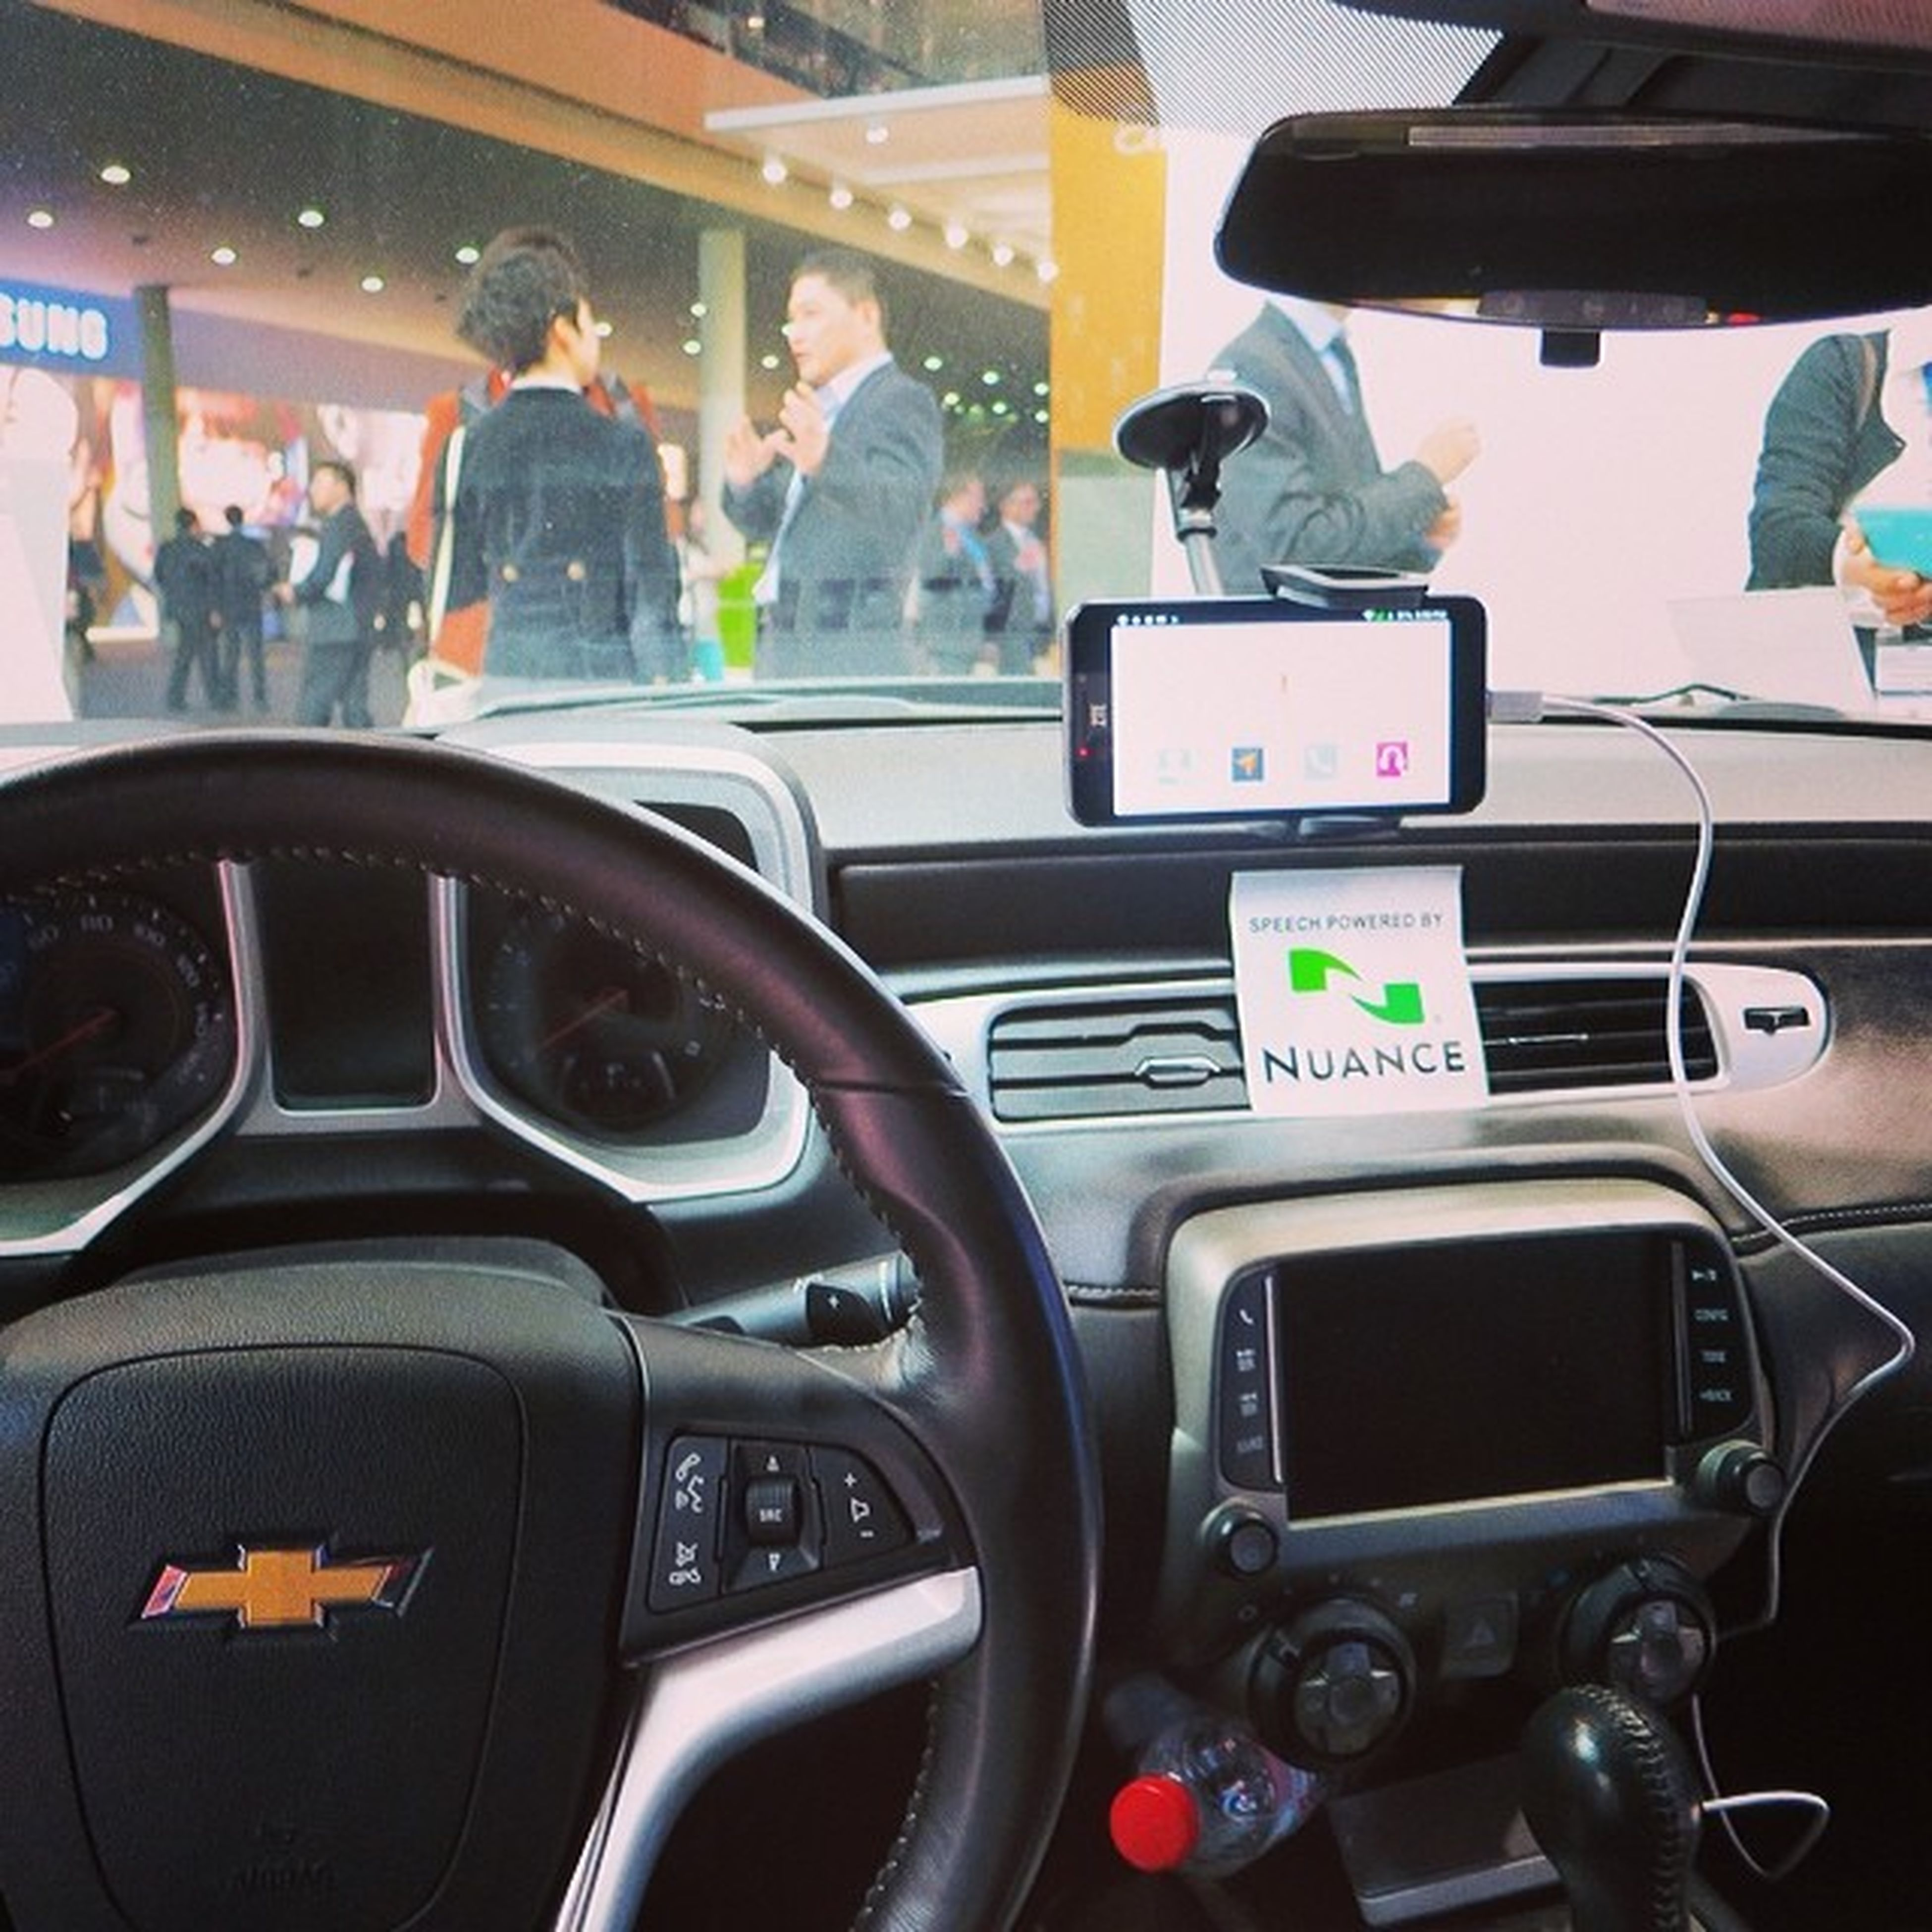 transportation, land vehicle, car, mode of transport, vehicle interior, motorcycle, stationary, travel, indoors, technology, close-up, street, part of, parking, car interior, day, parked, vehicle seat, steering wheel